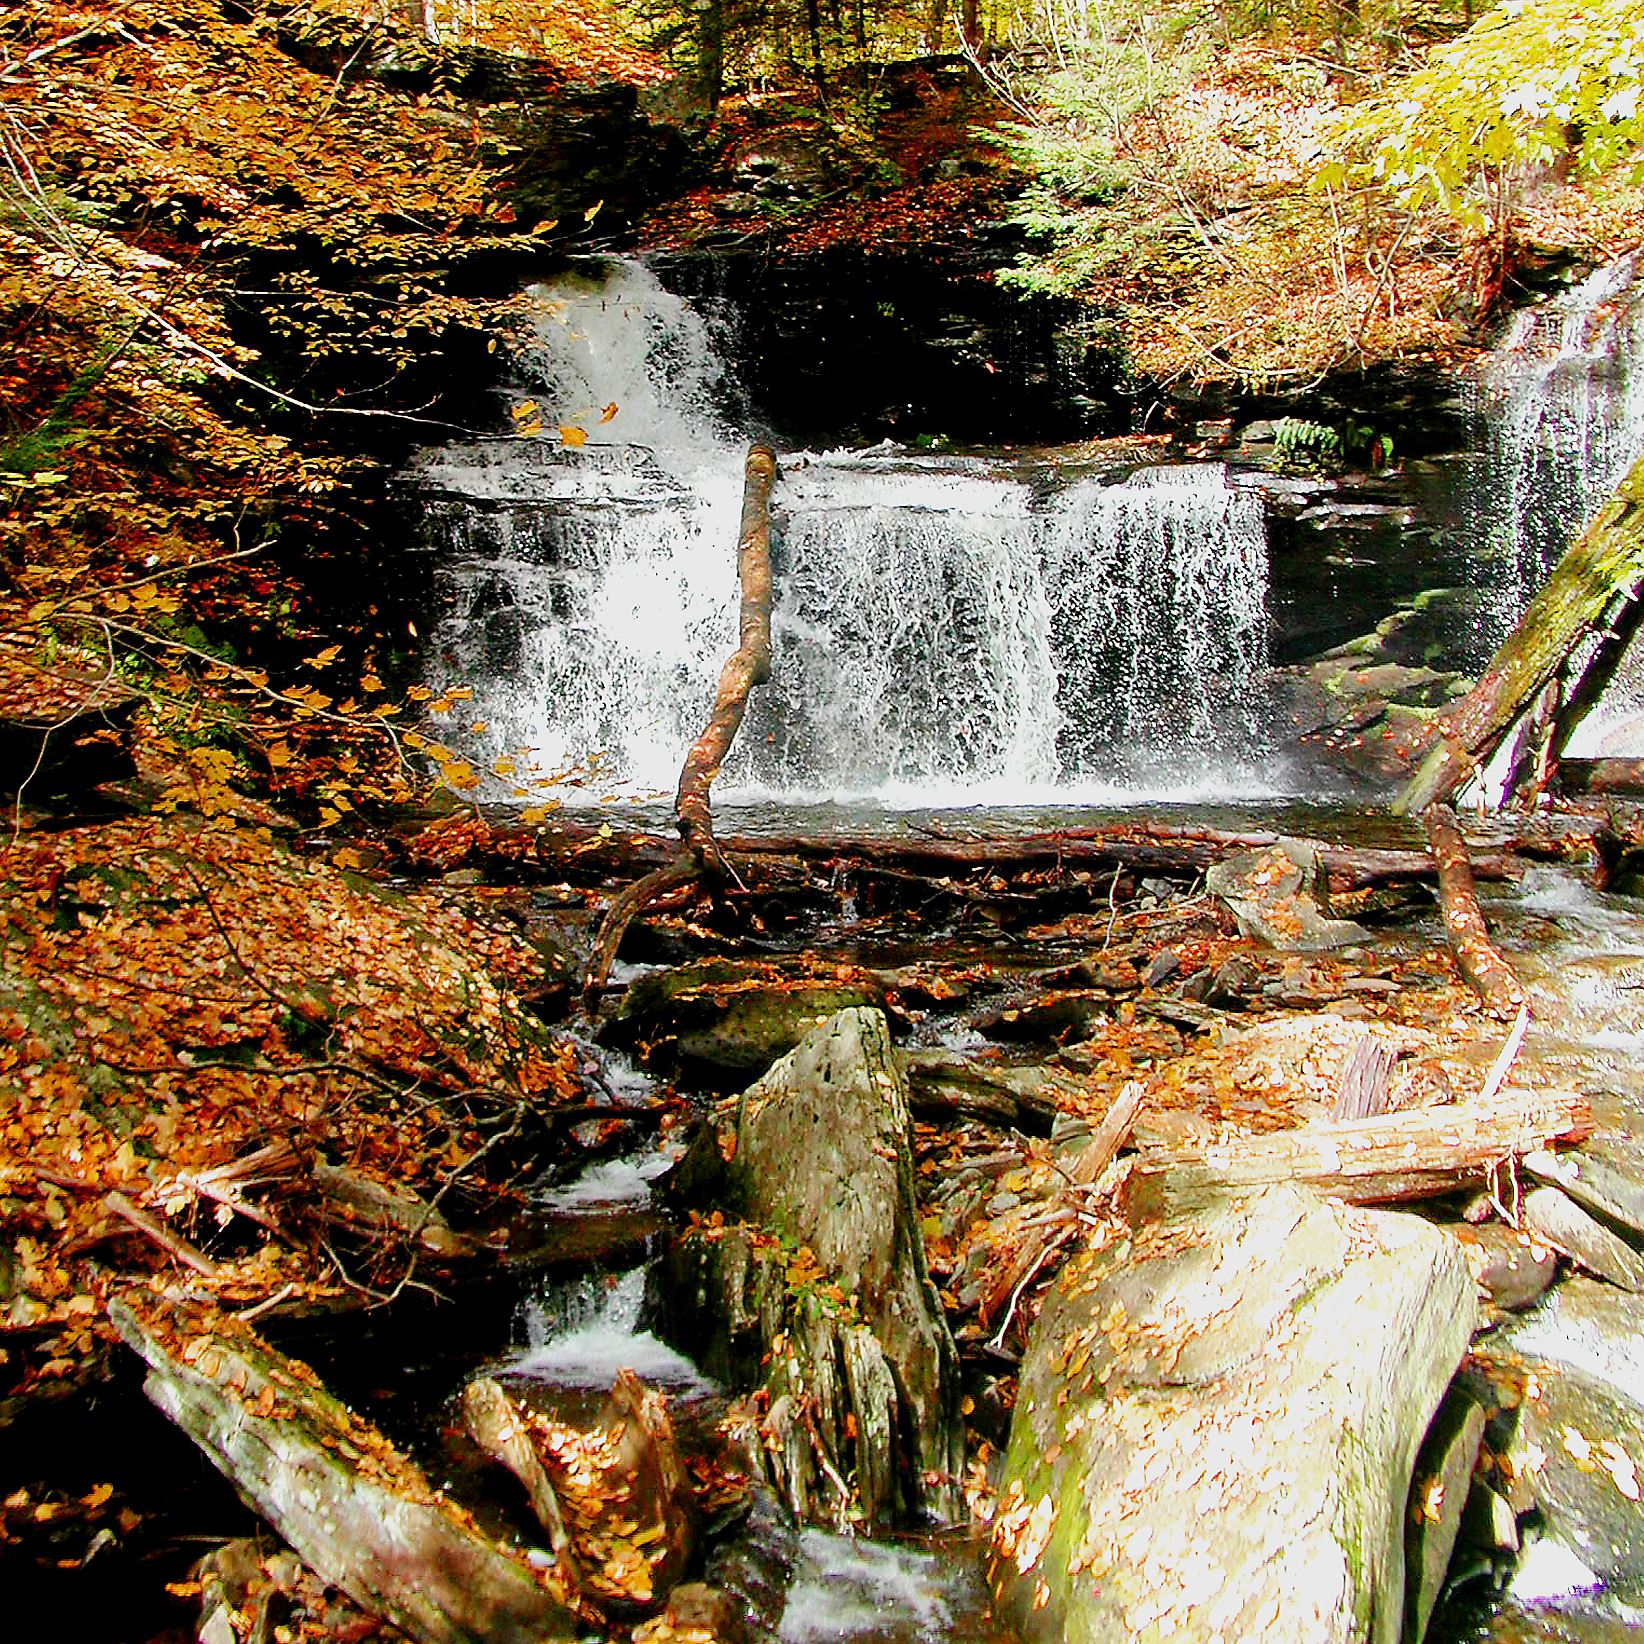 Autumn shows its colors at Ricketts Glen State Park